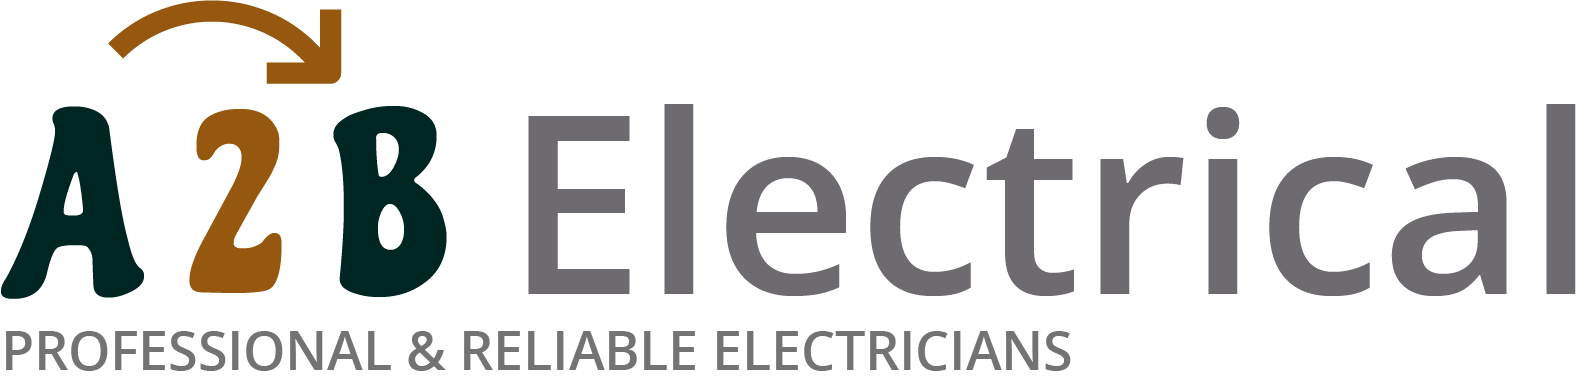 If you have electrical wiring problems in Rayleigh, we can provide an electrician to have a look for you.